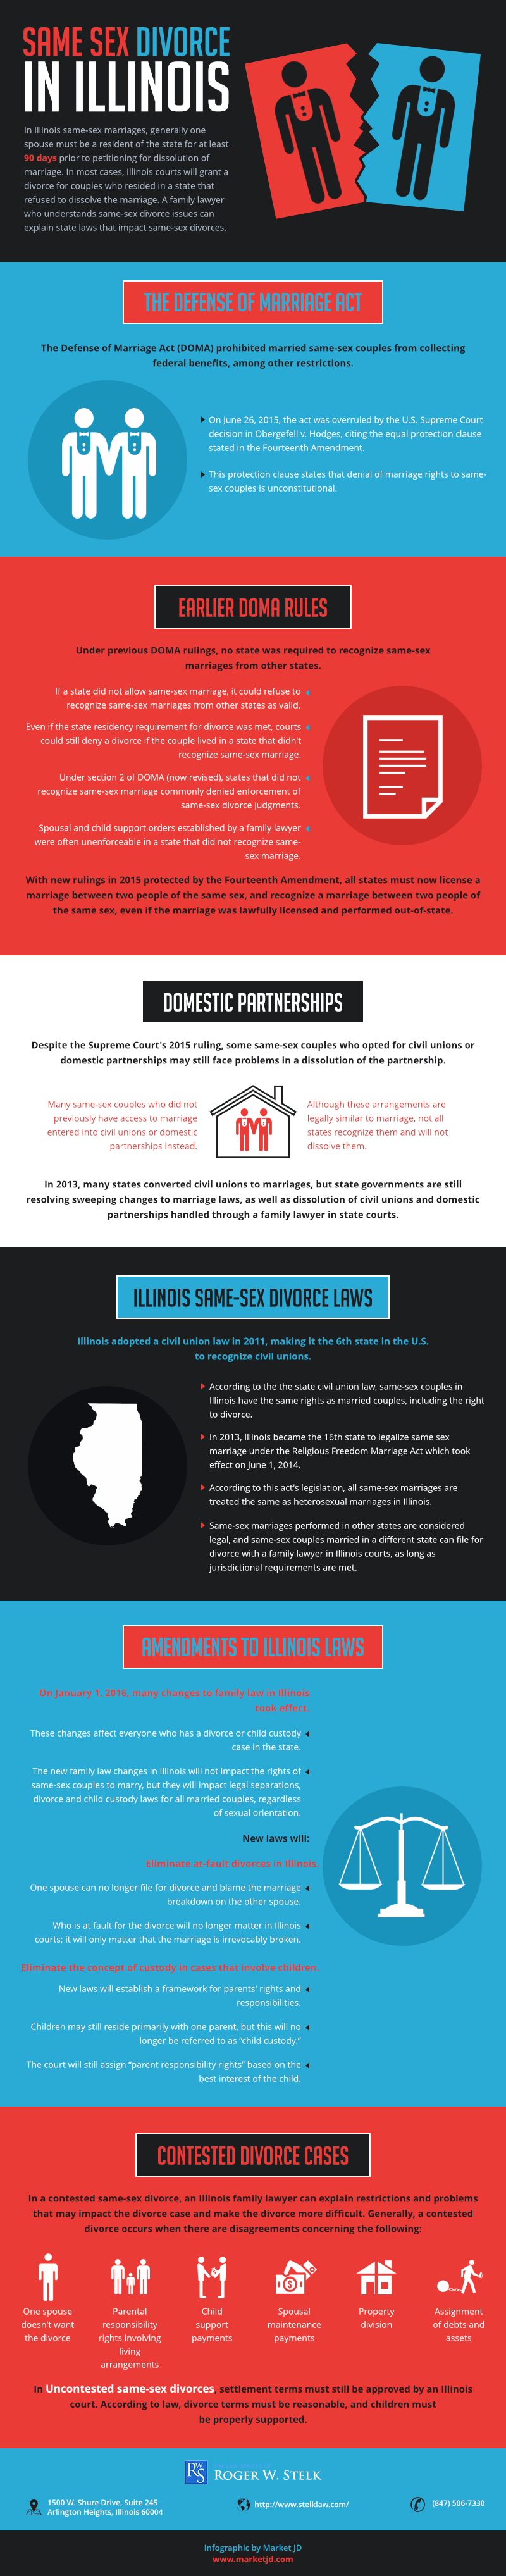 Same Sex Divorce in Illinois